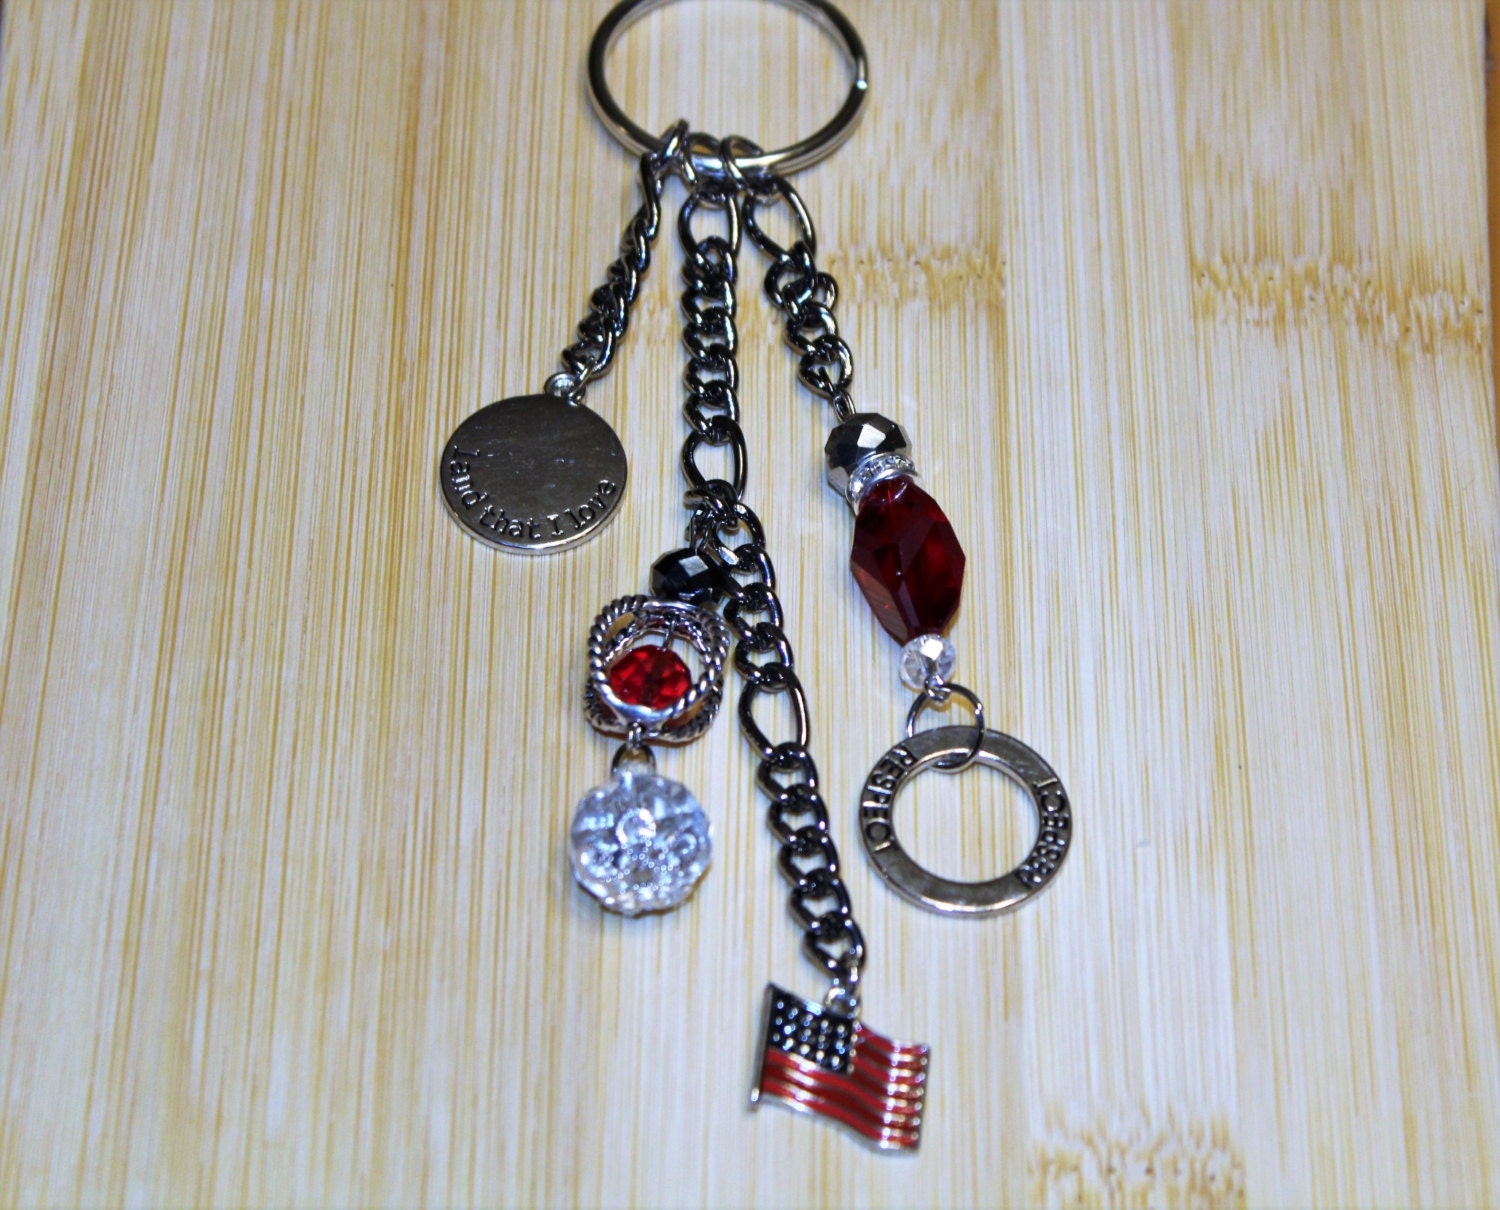 Keychains Lanyards Circuit Board Glass Pendant Photo Necklace Keychain Key Chain Patriotic Flag Beads Charms Heart